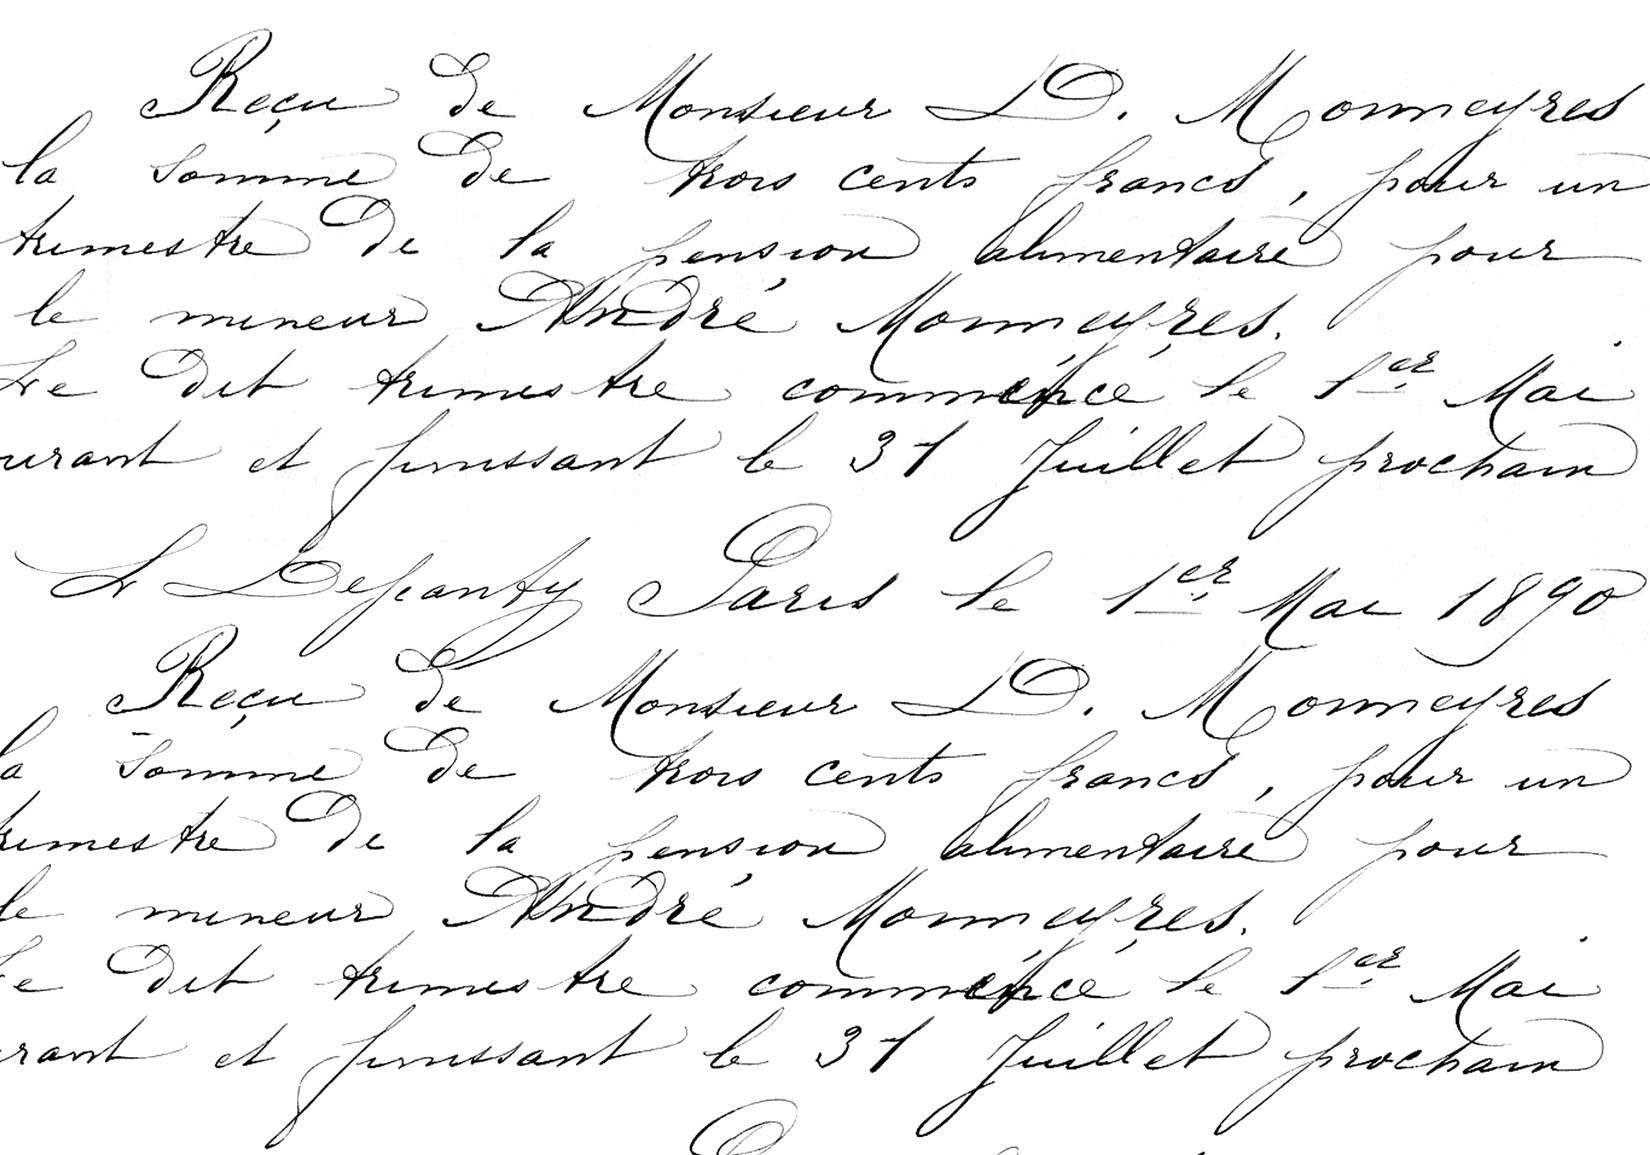 victorian cursive writing Created date: thu jun 20 10:48:15 2002.